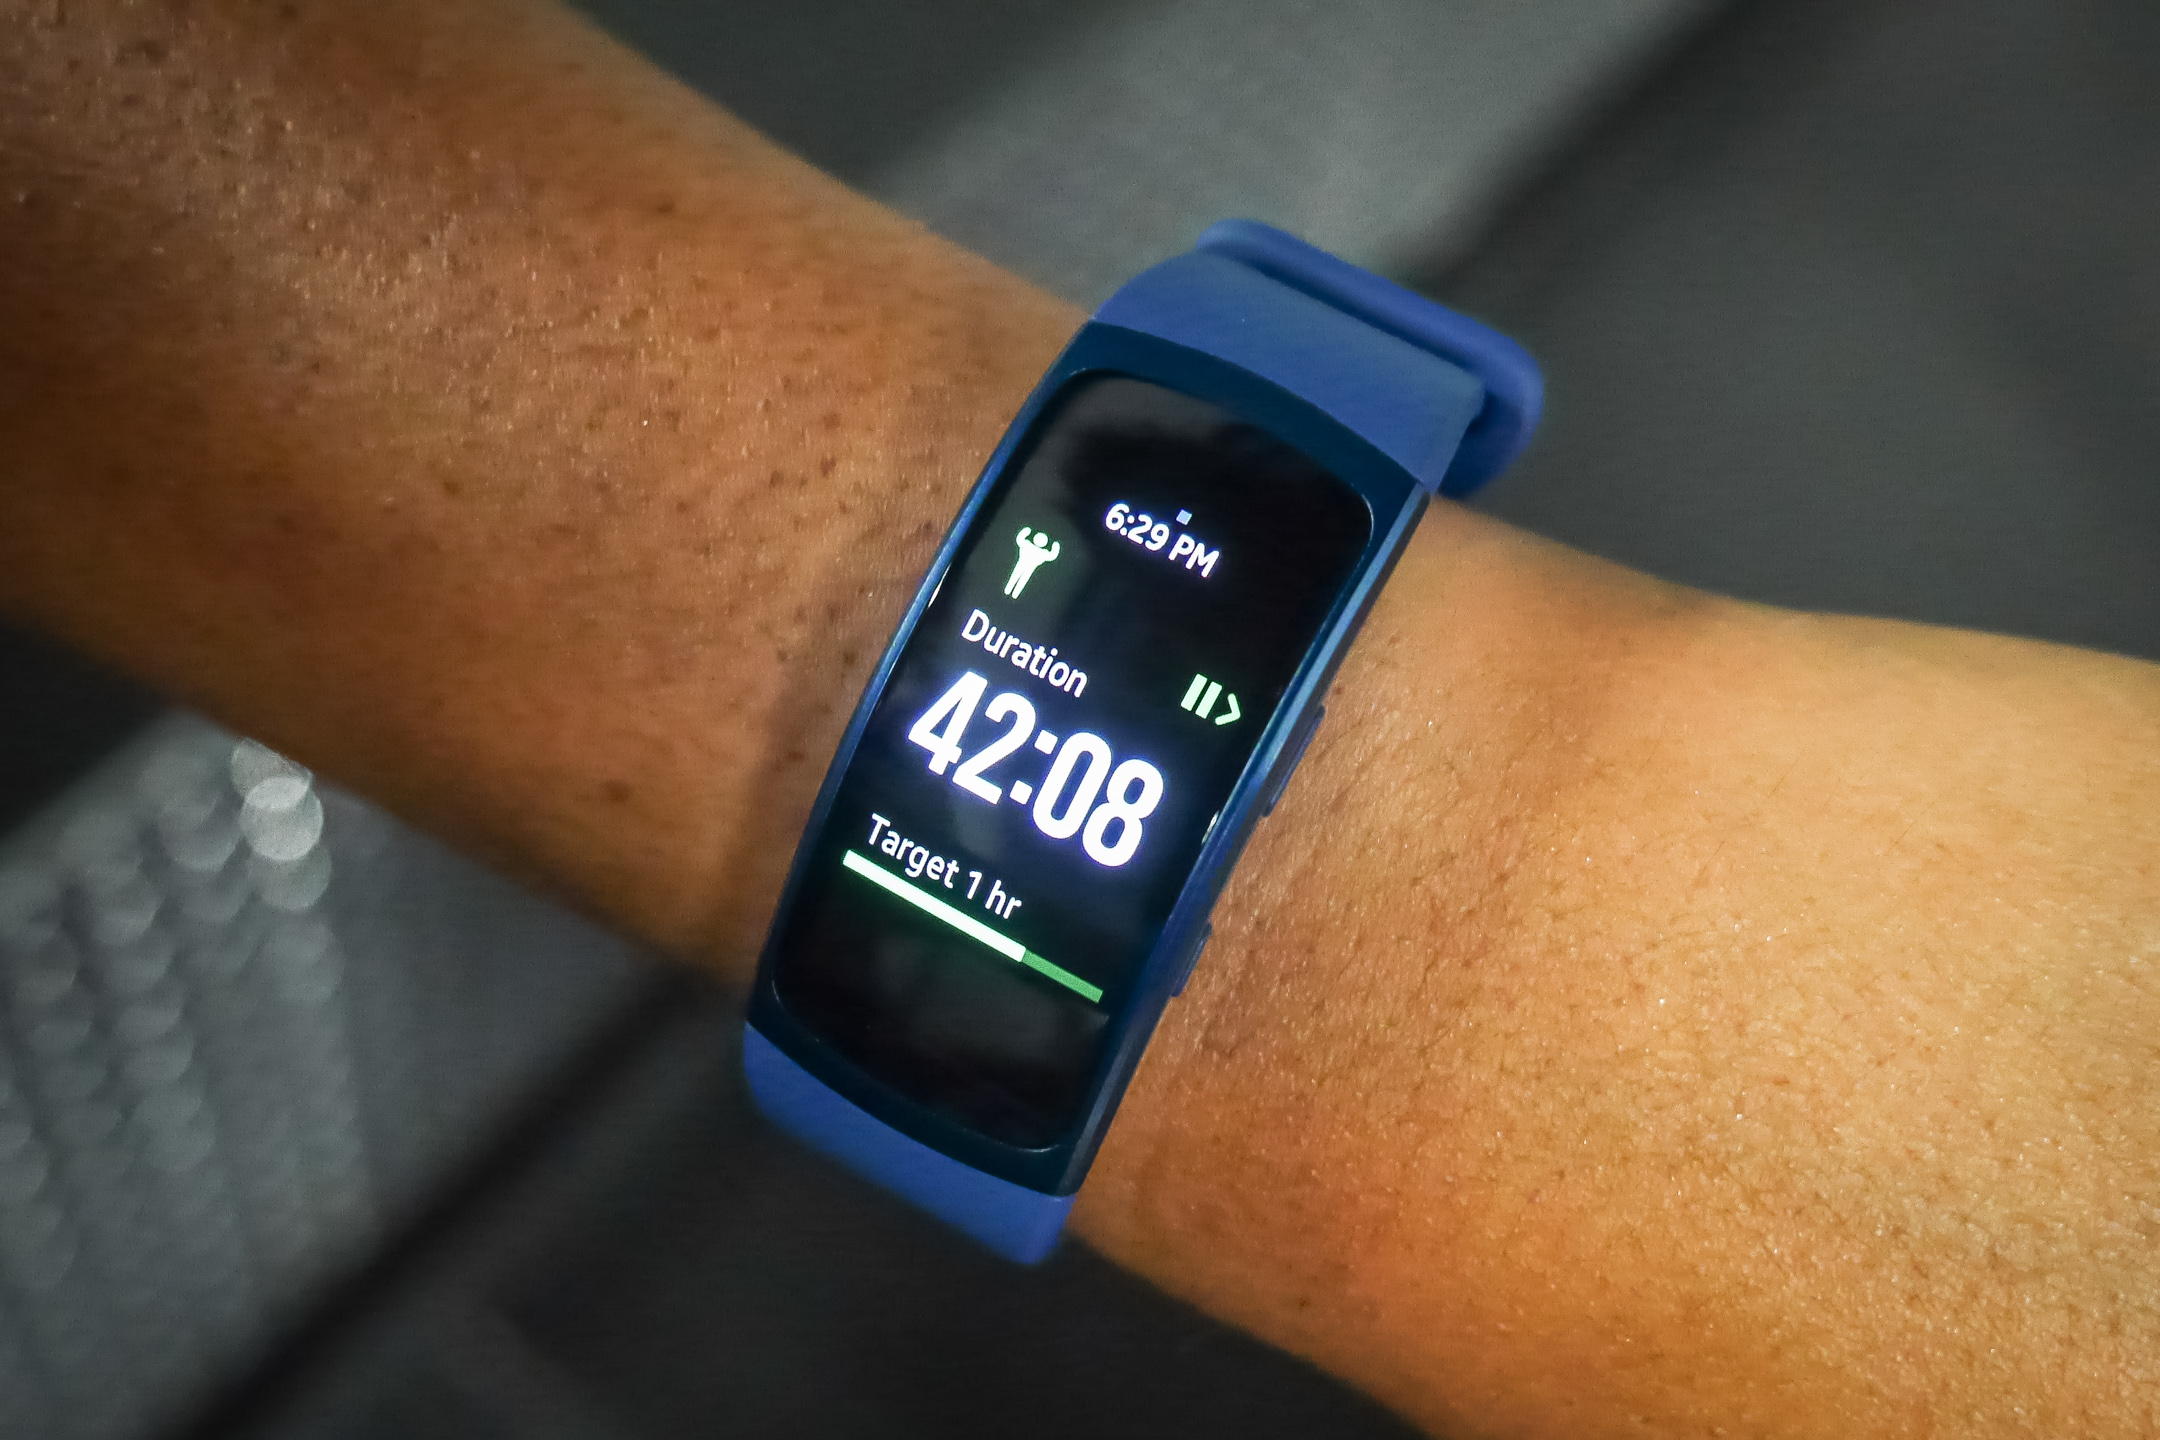 samsung gear fit 2 review aa (13 of 26)